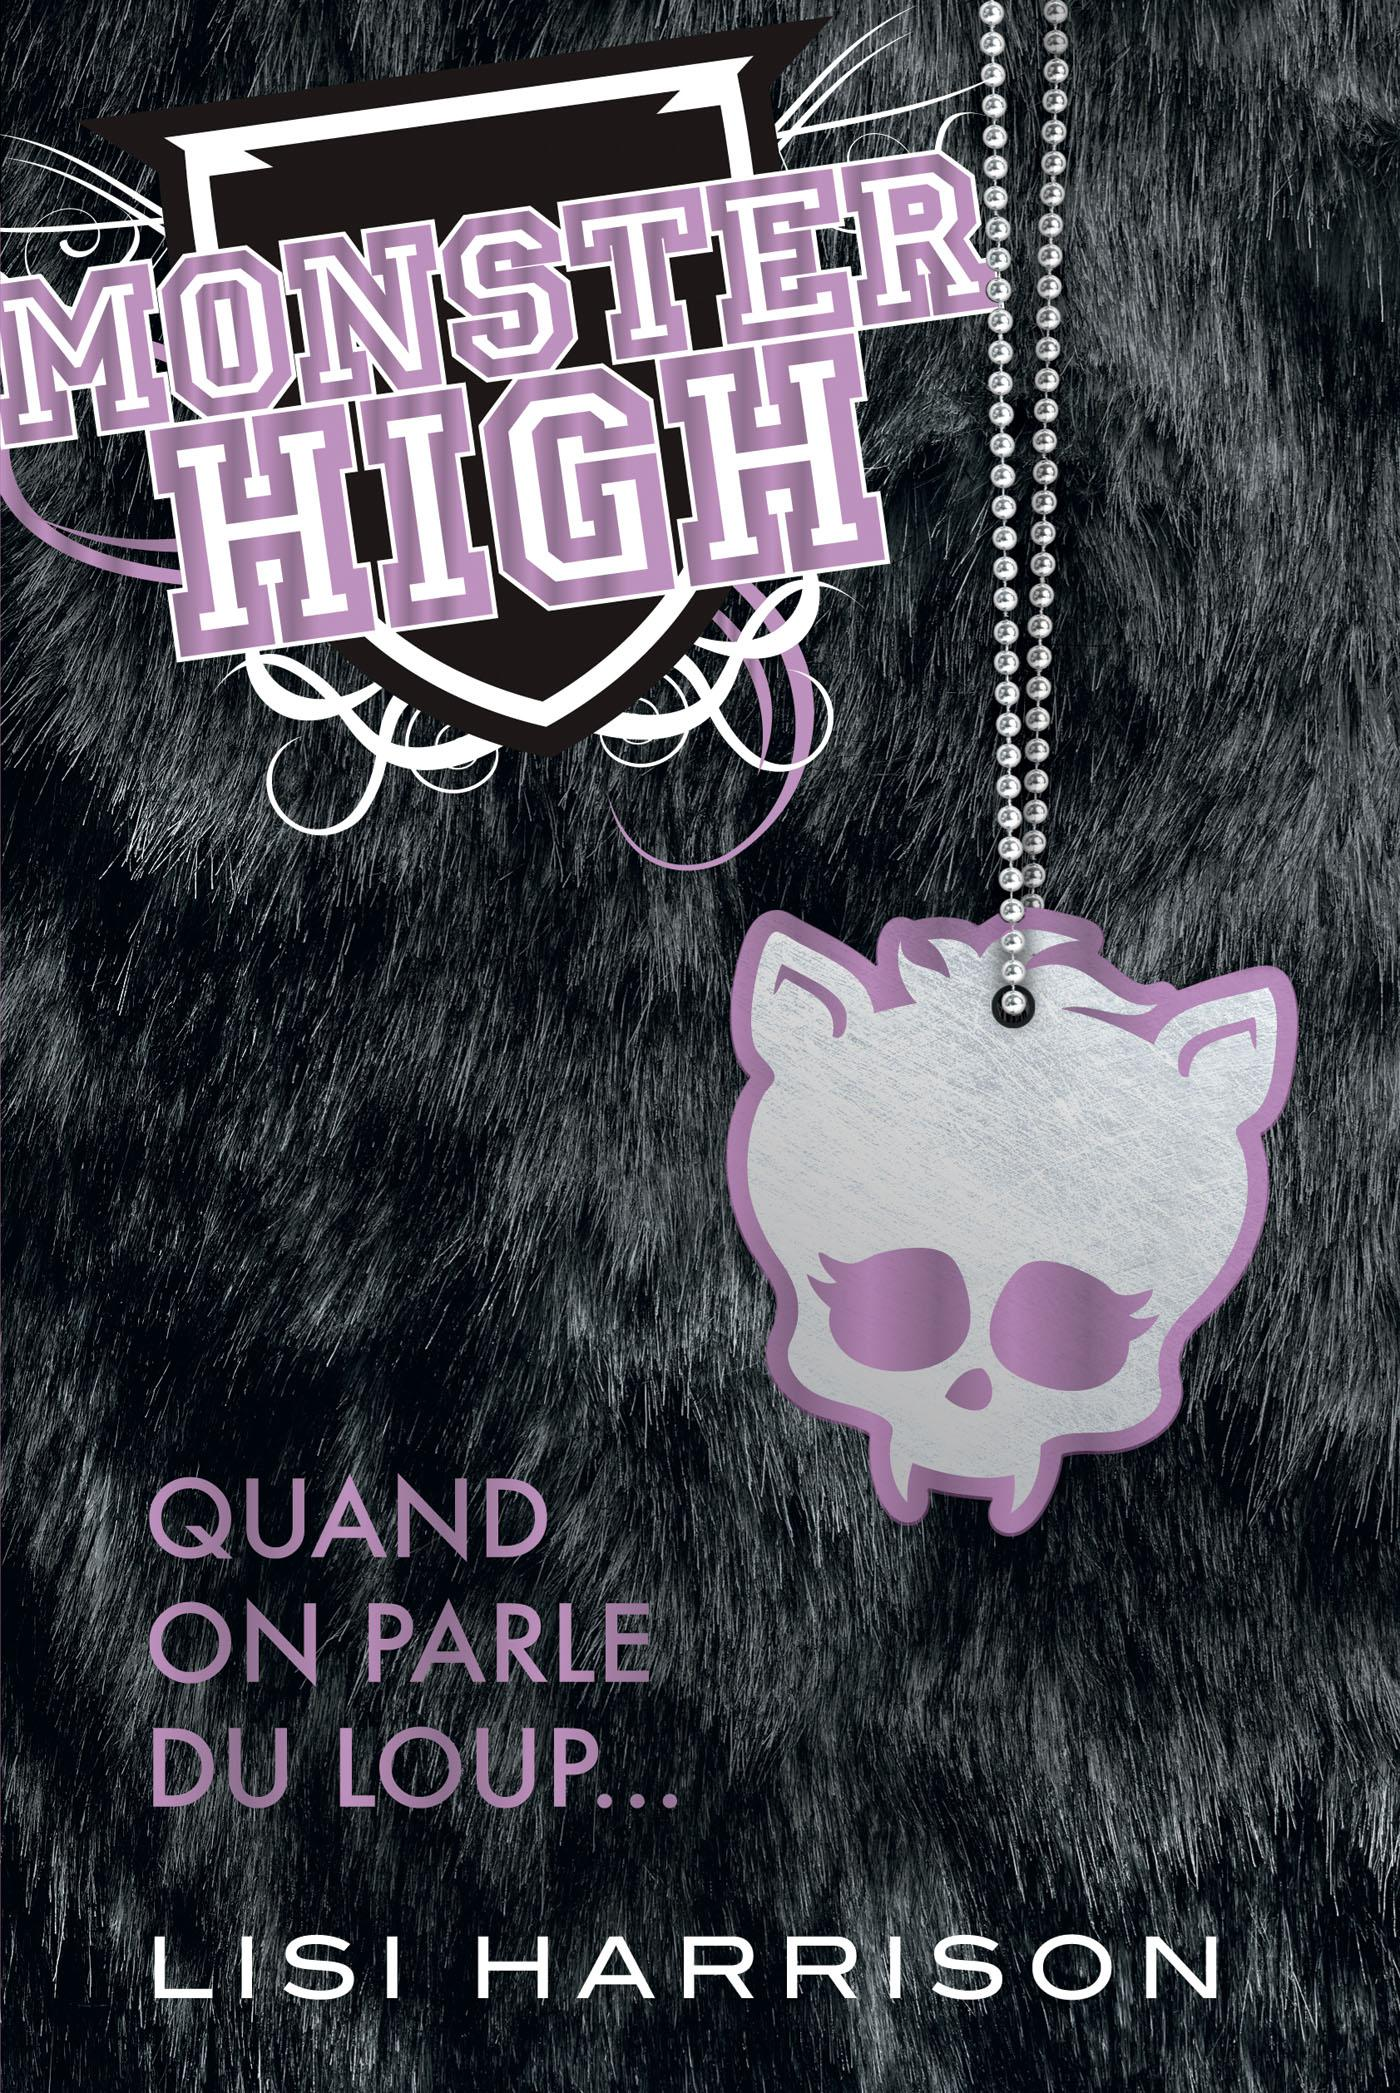 Quand on parle du loup..., MONSTER HIGH, T3